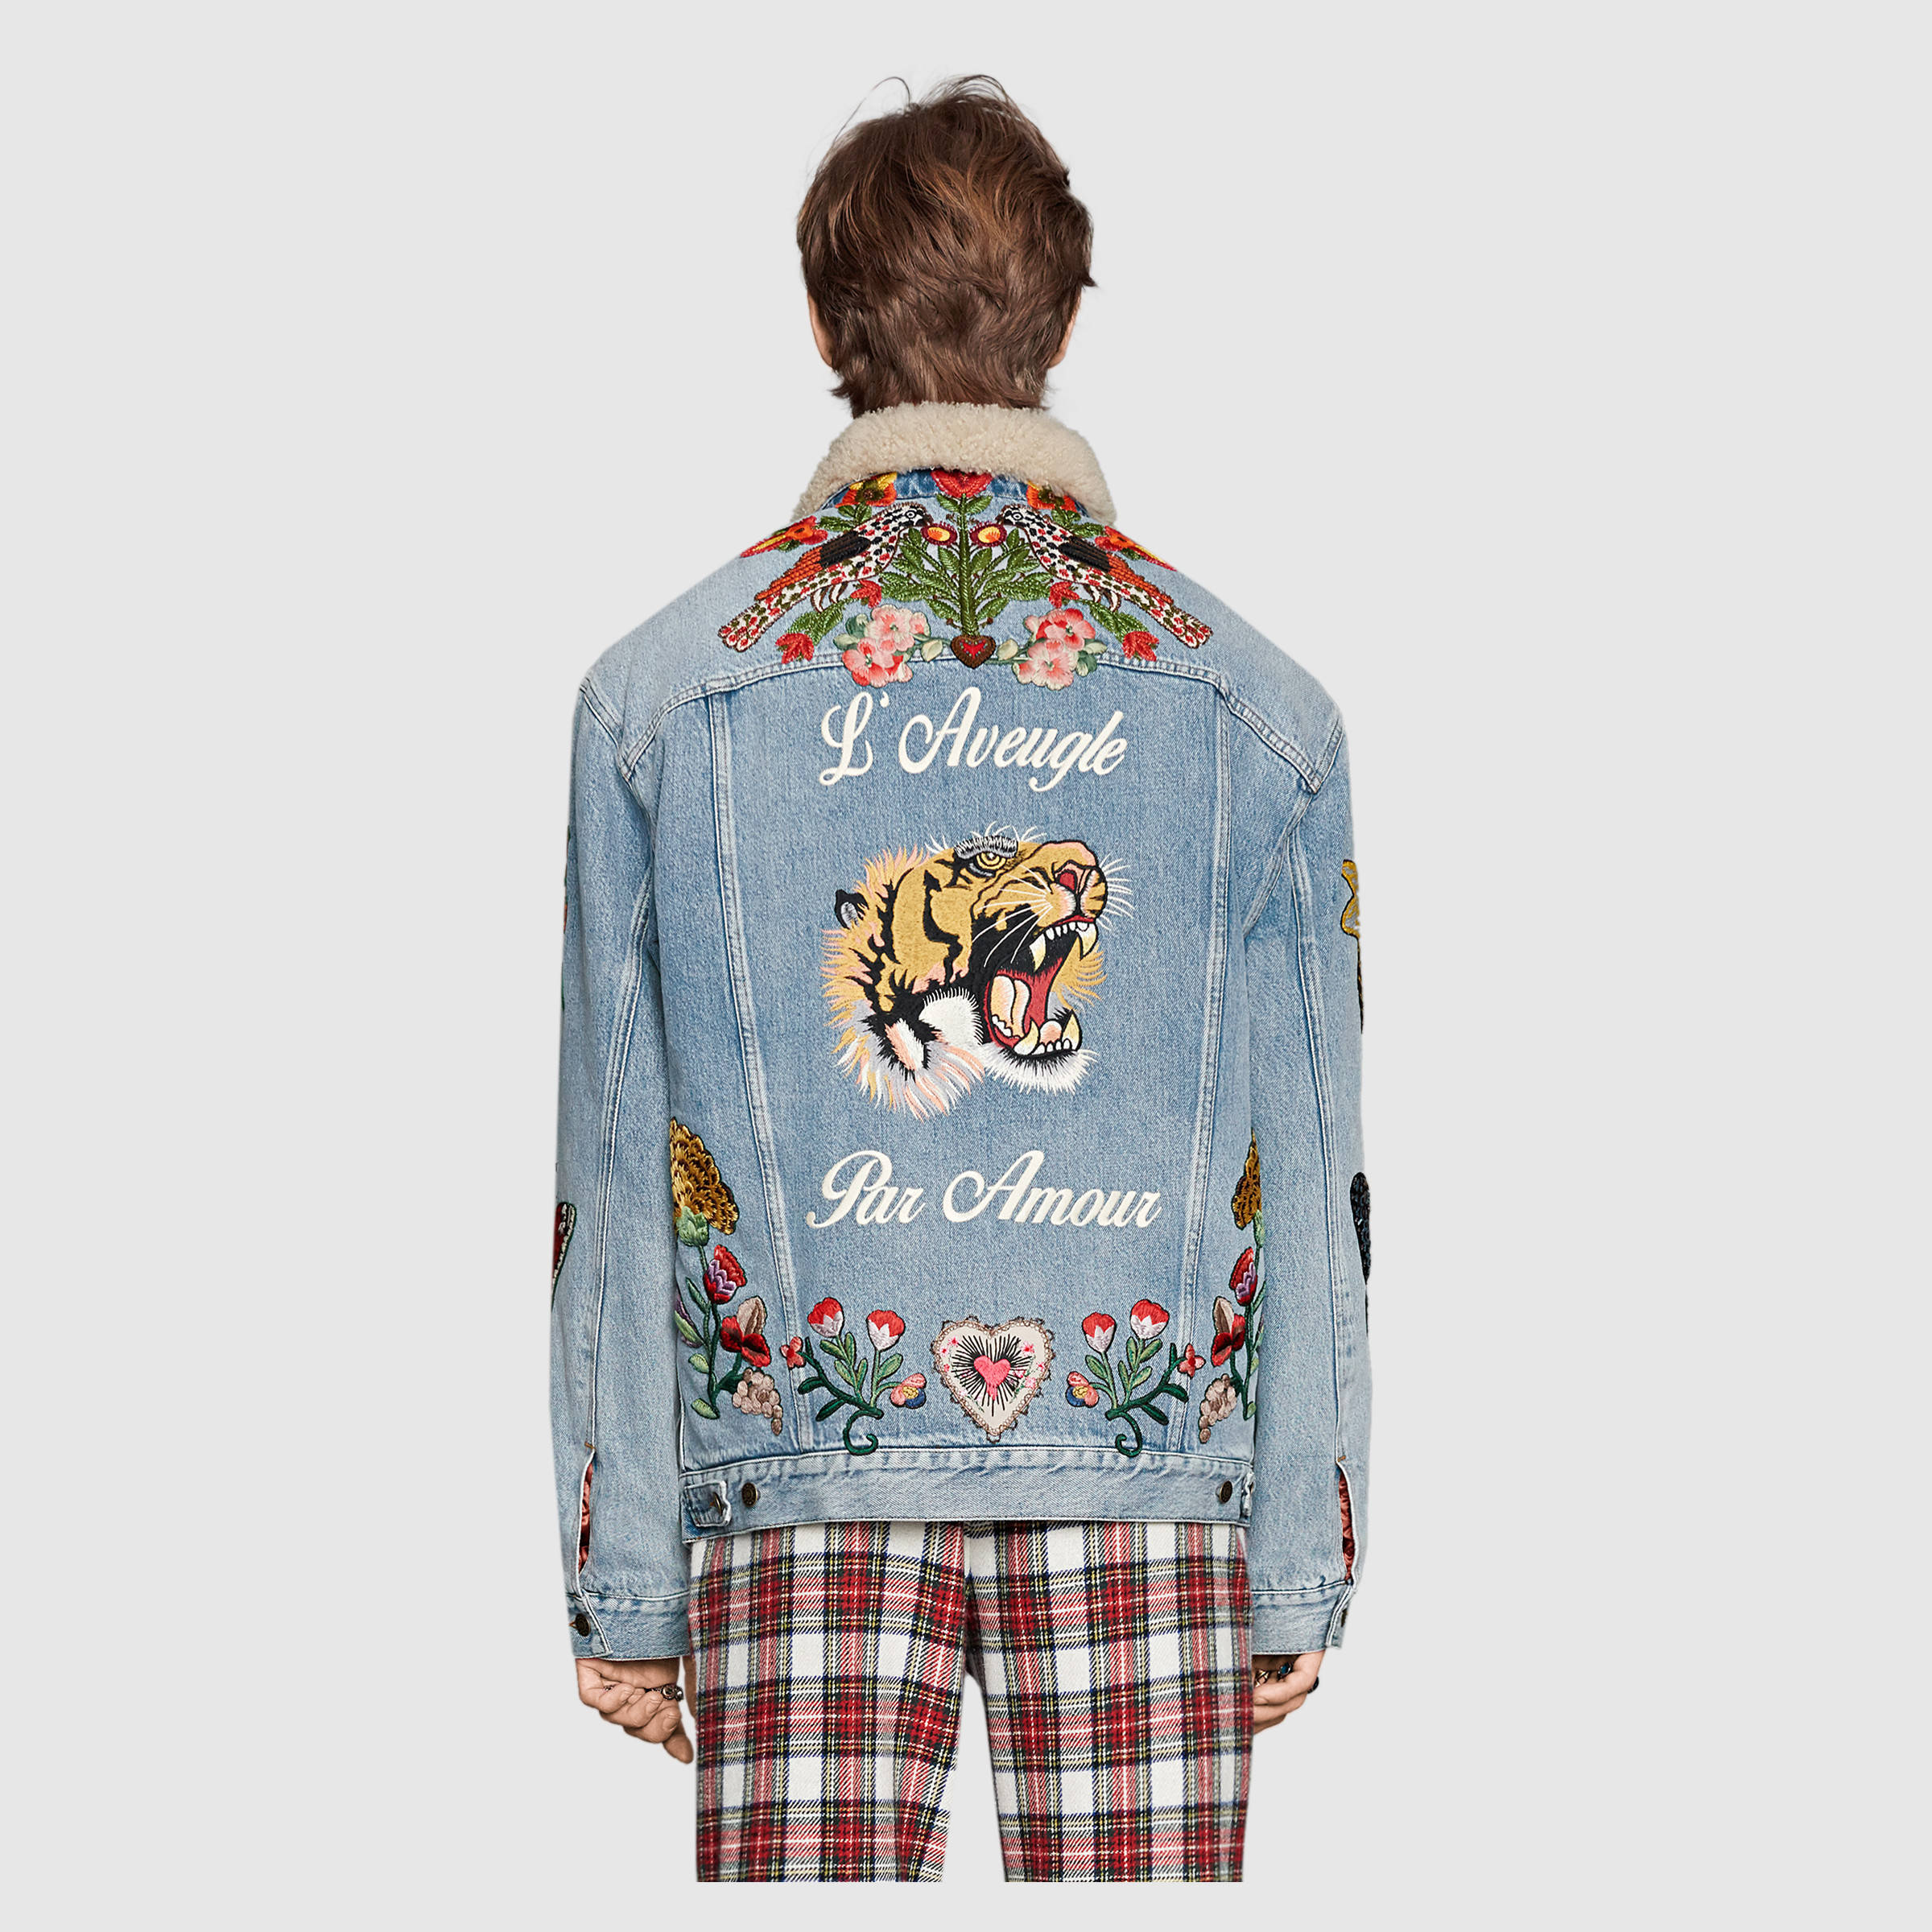 408623_xr240_4417_004_100_0000_light-embroidered-denim-jacket-with-shearling